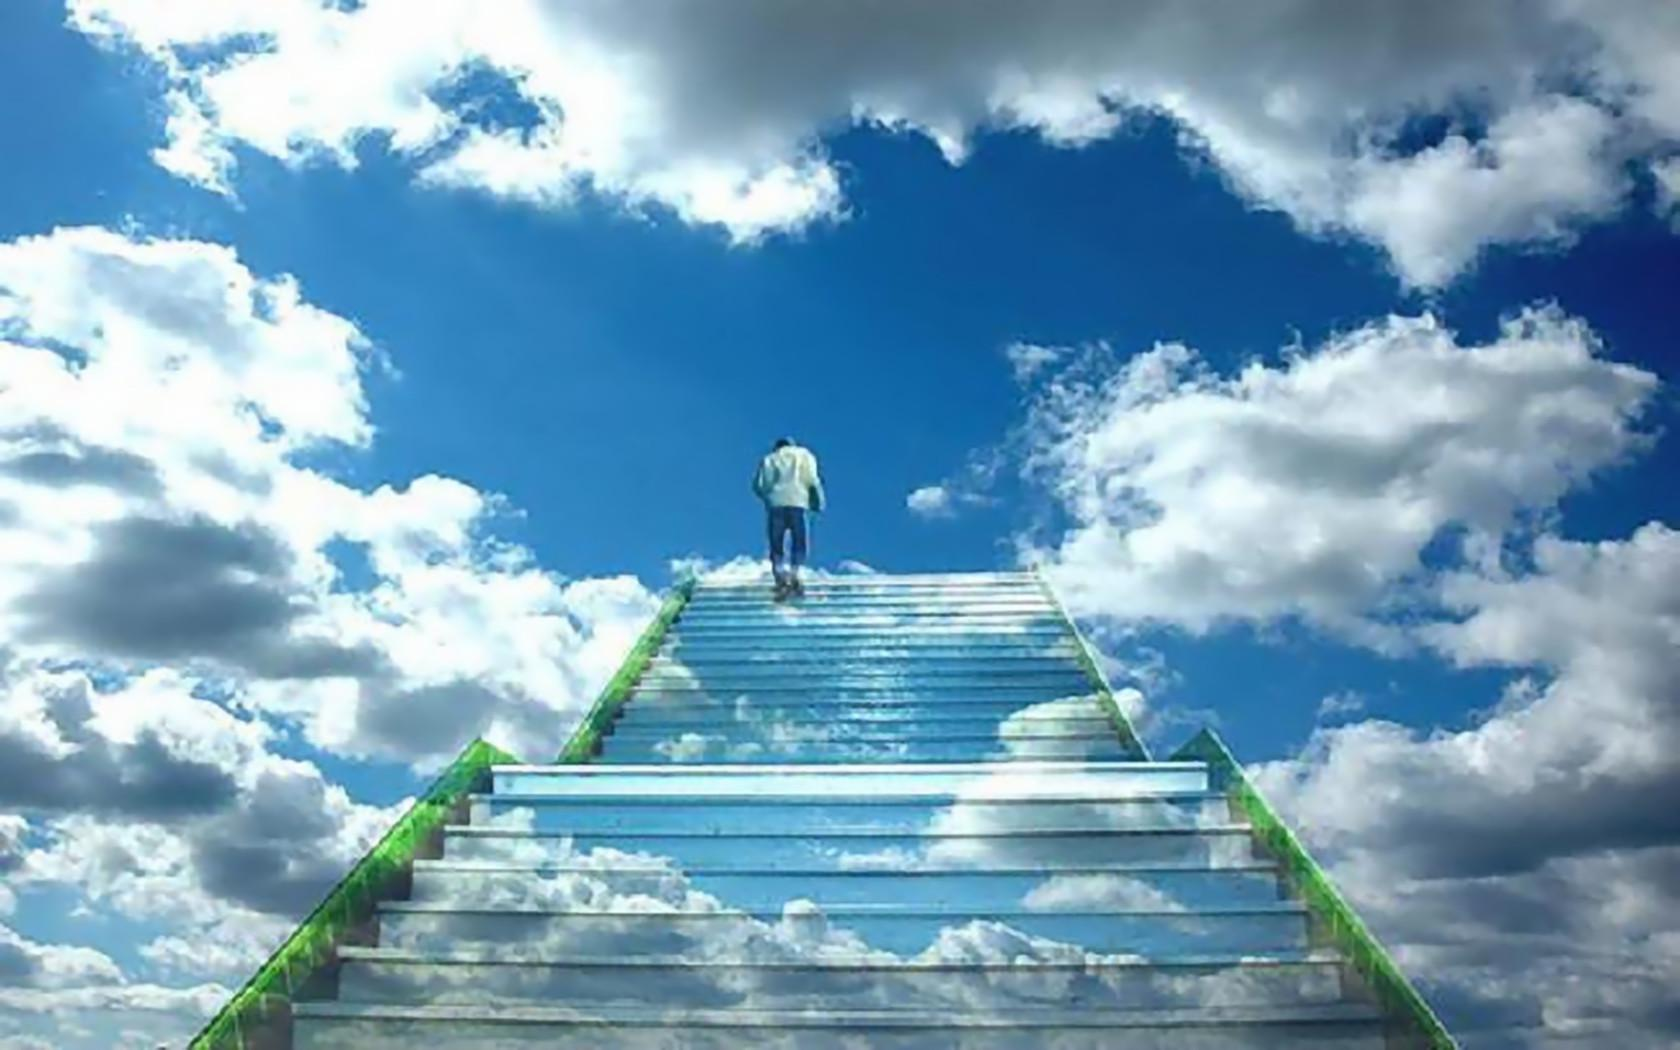 Stairway-To-Heaven-hd-Wallpaper